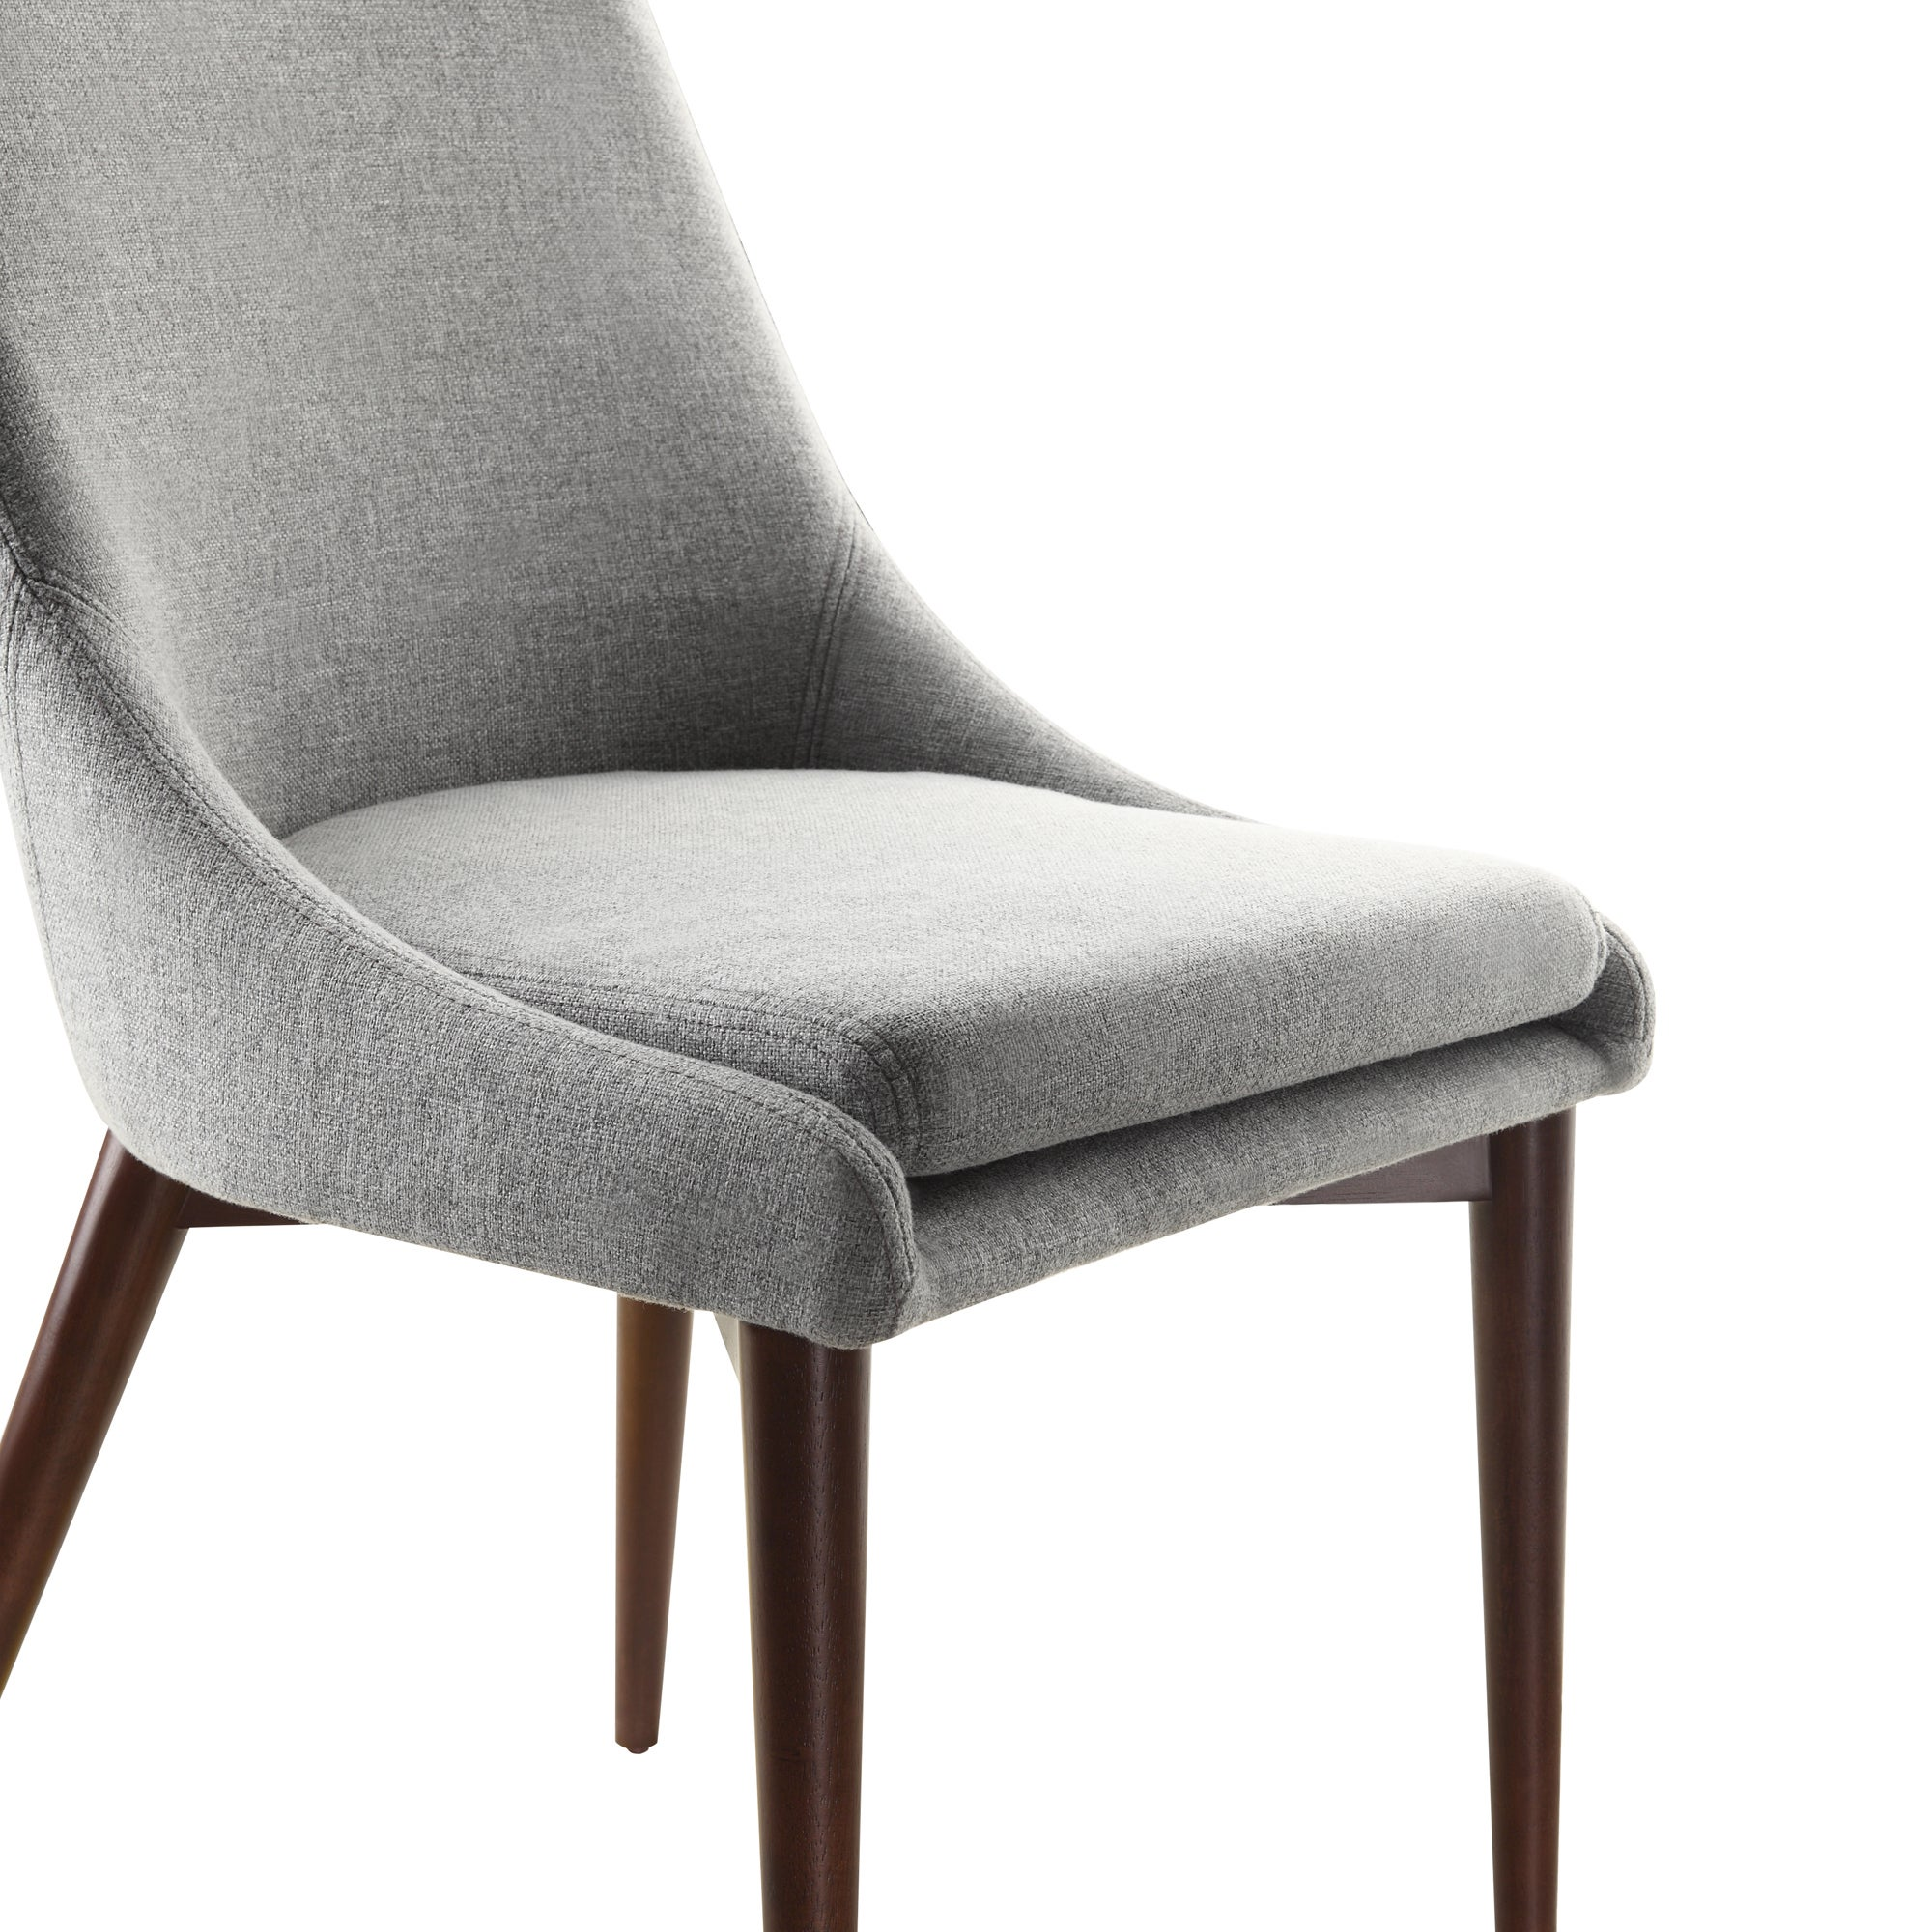 Sasha Mid-century Grey Fabric Upholstered Tapered Leg Dining Chairs (Set of  2) iNSPIRE Q Modern - Free Shipping Today - Overstock.com - 16143504